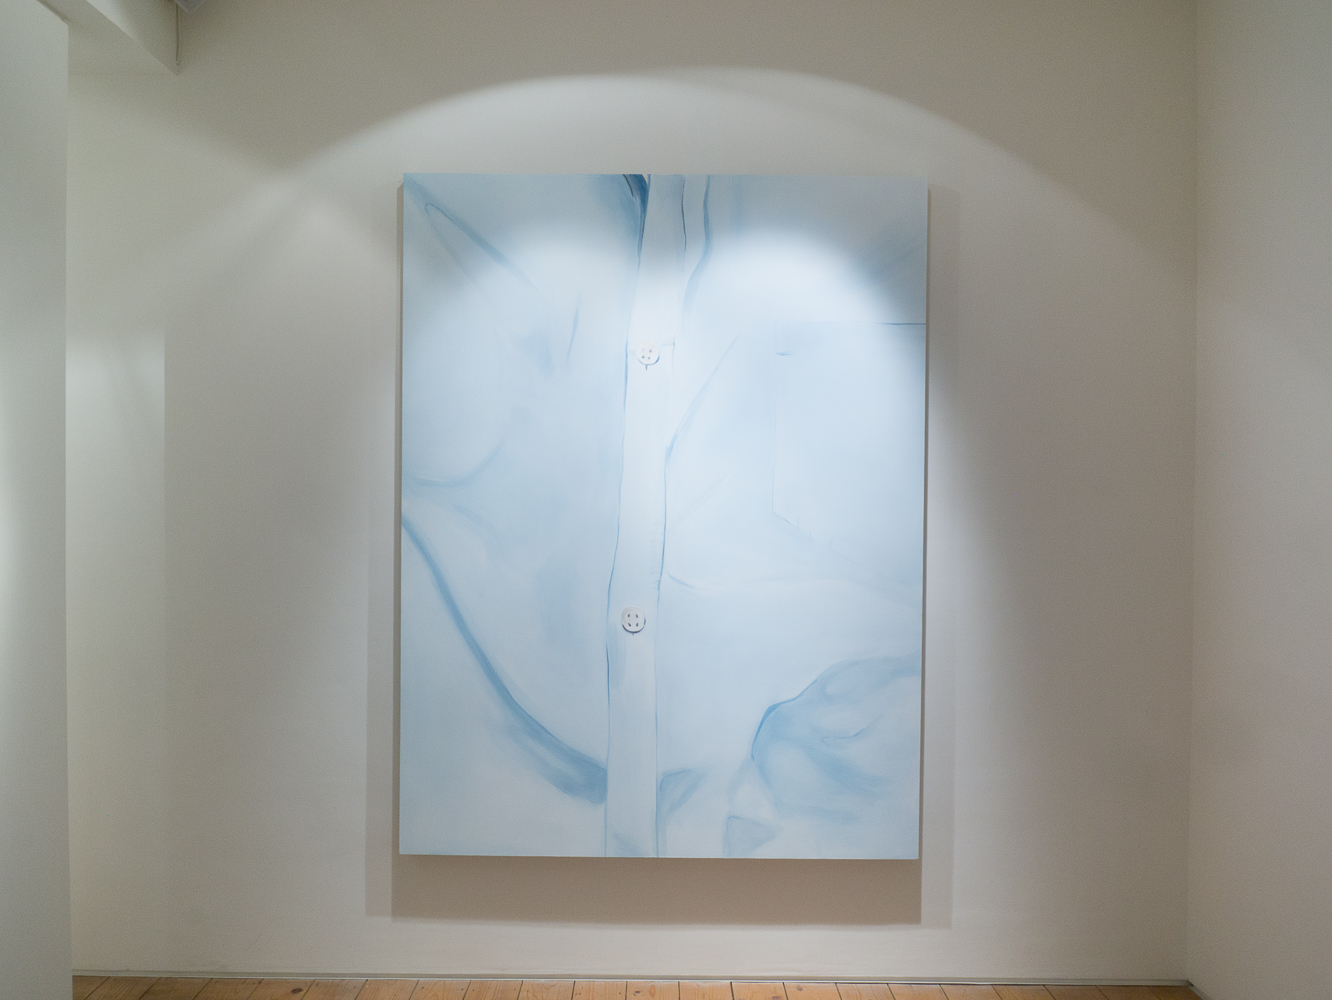 Aglaé Bassens Installation View from her Solo show Front Parting curated by Joe Madeira at CABIN gallery-1-2.jpg